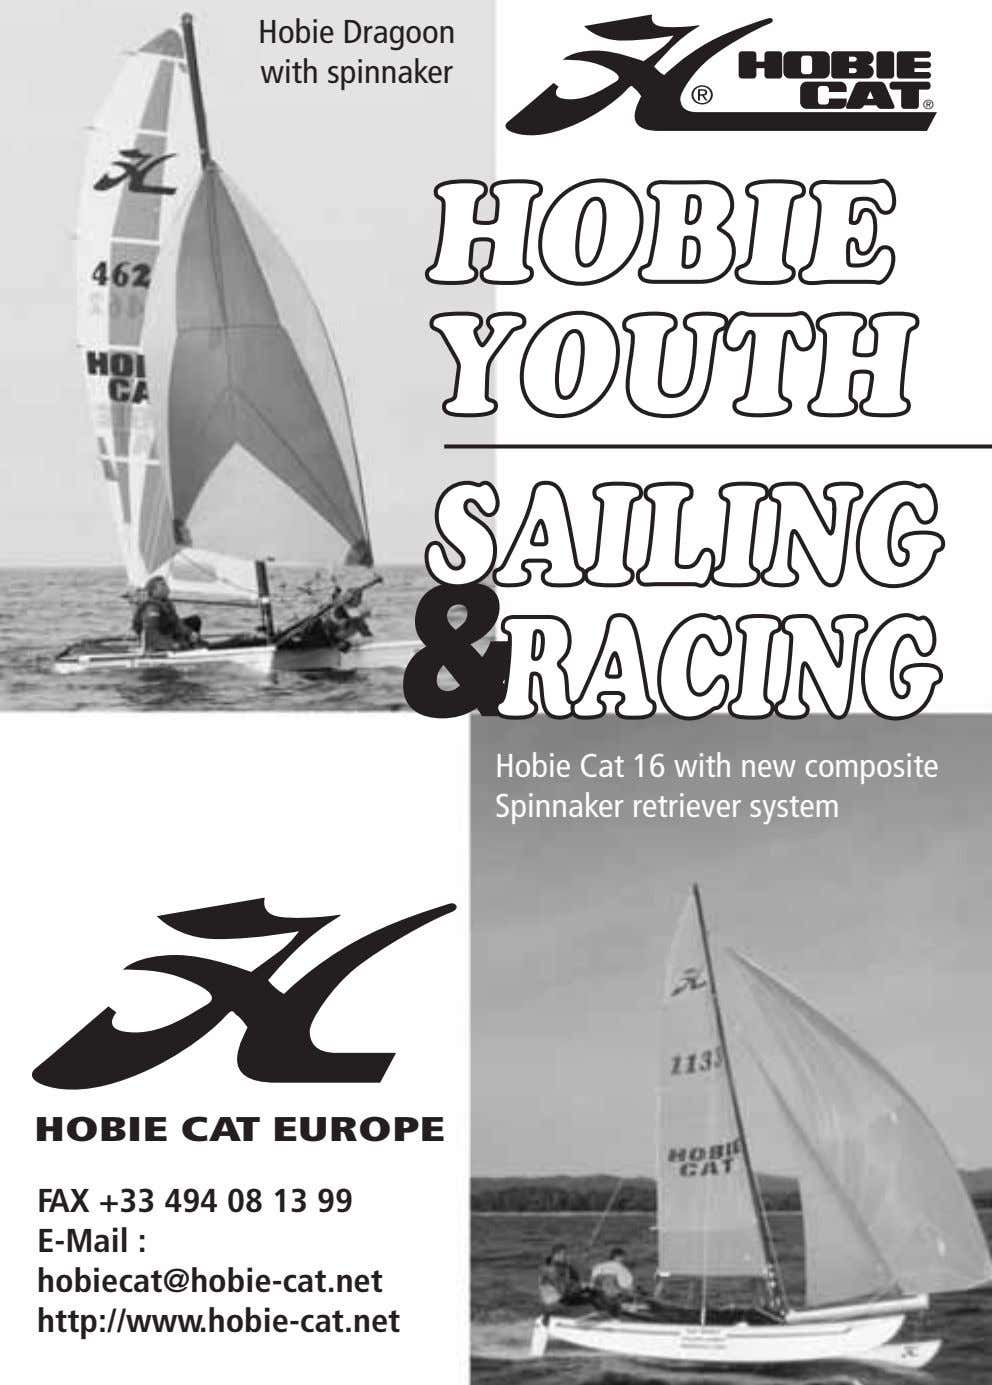 Hobie Dragoon with spinnaker HOBIE YOUTH SAILING RACING Hobie Cat 16 with new composite Spinnaker